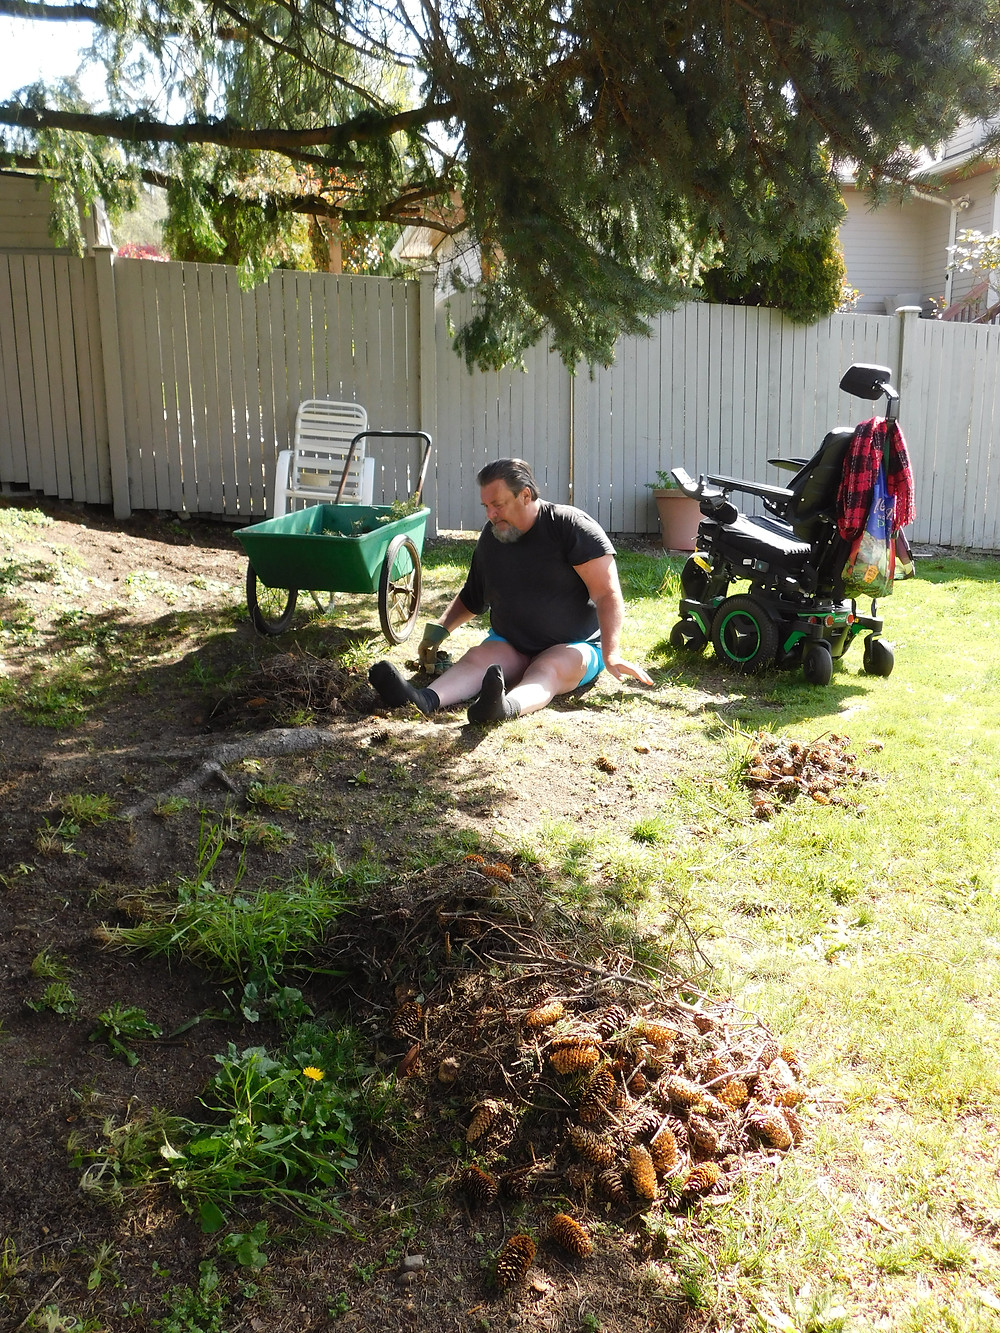 I helped him to the ground, so he could do a bit of clean up in the back yard. He makes the piles & then I move the garden cart near him, so he can put them in & I go dump it when it's full.